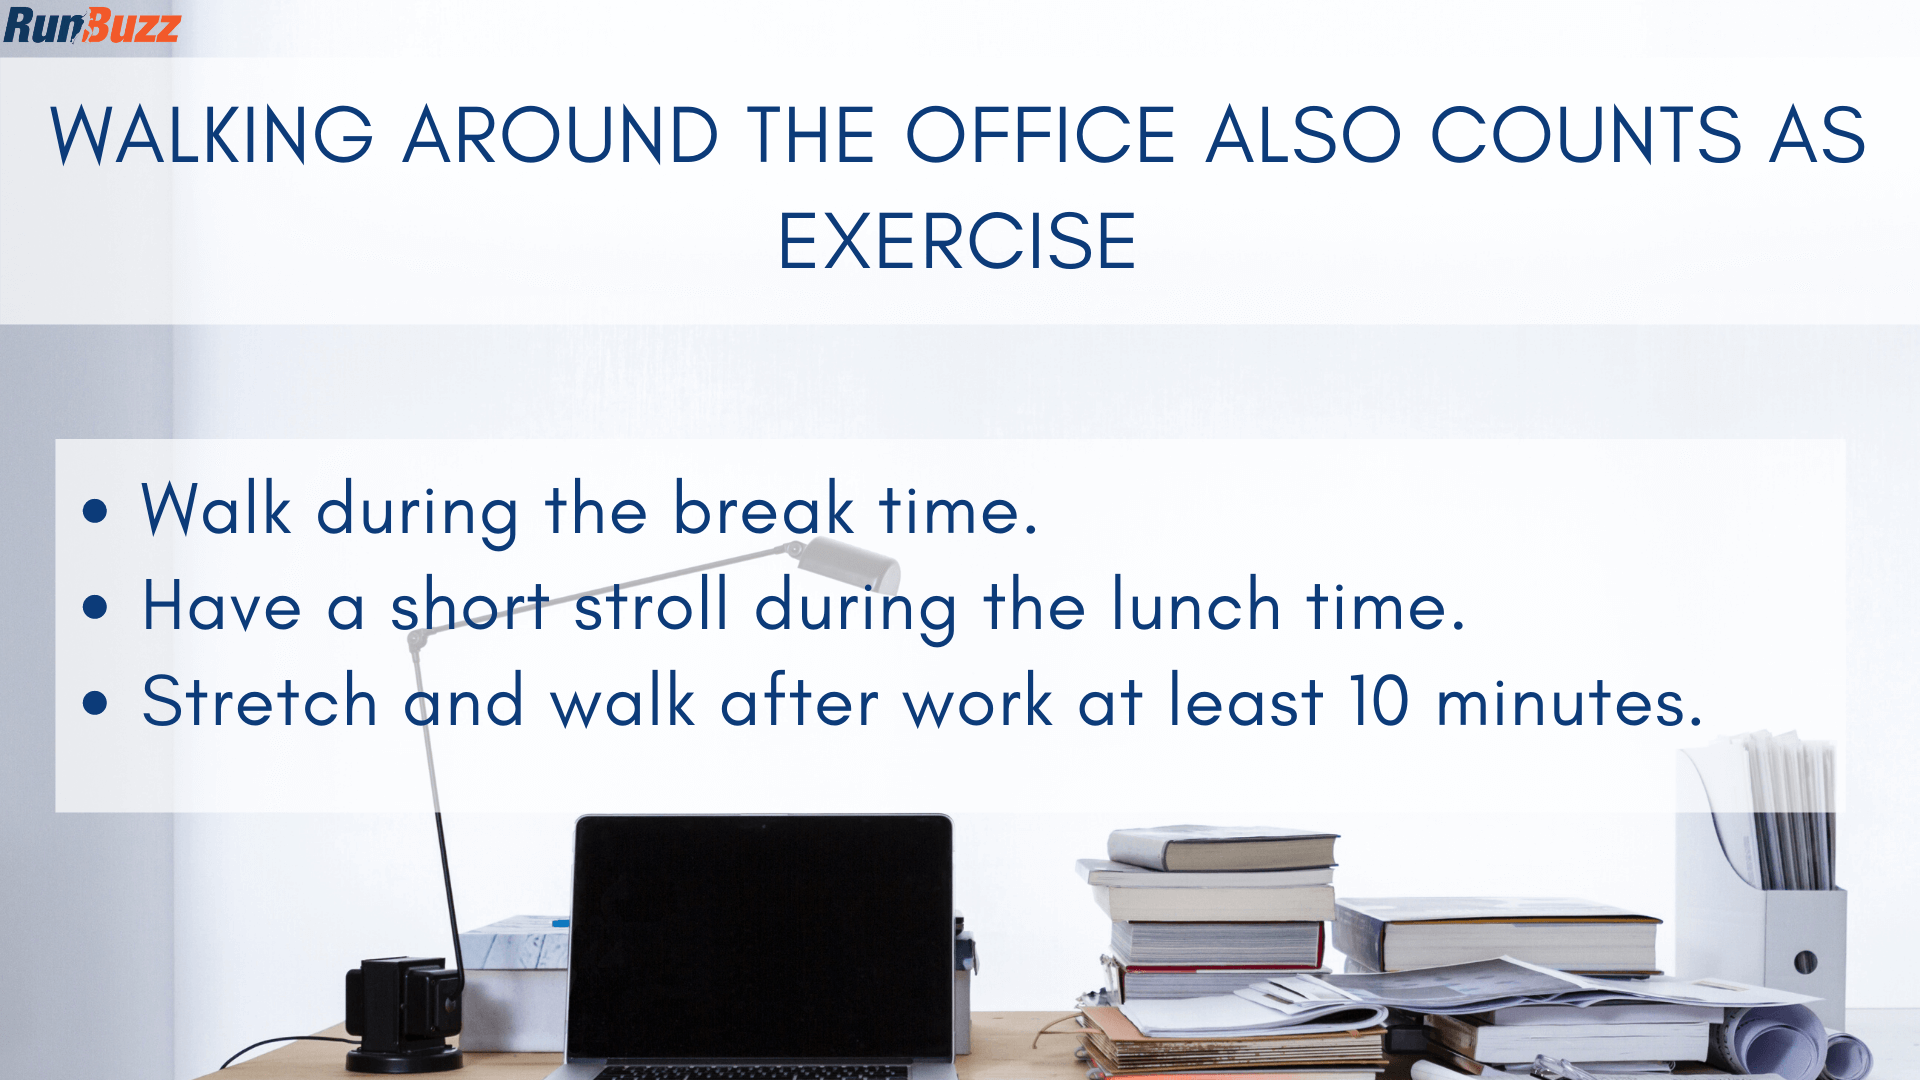 Walking-around-the-office-also-counts-as-exercise